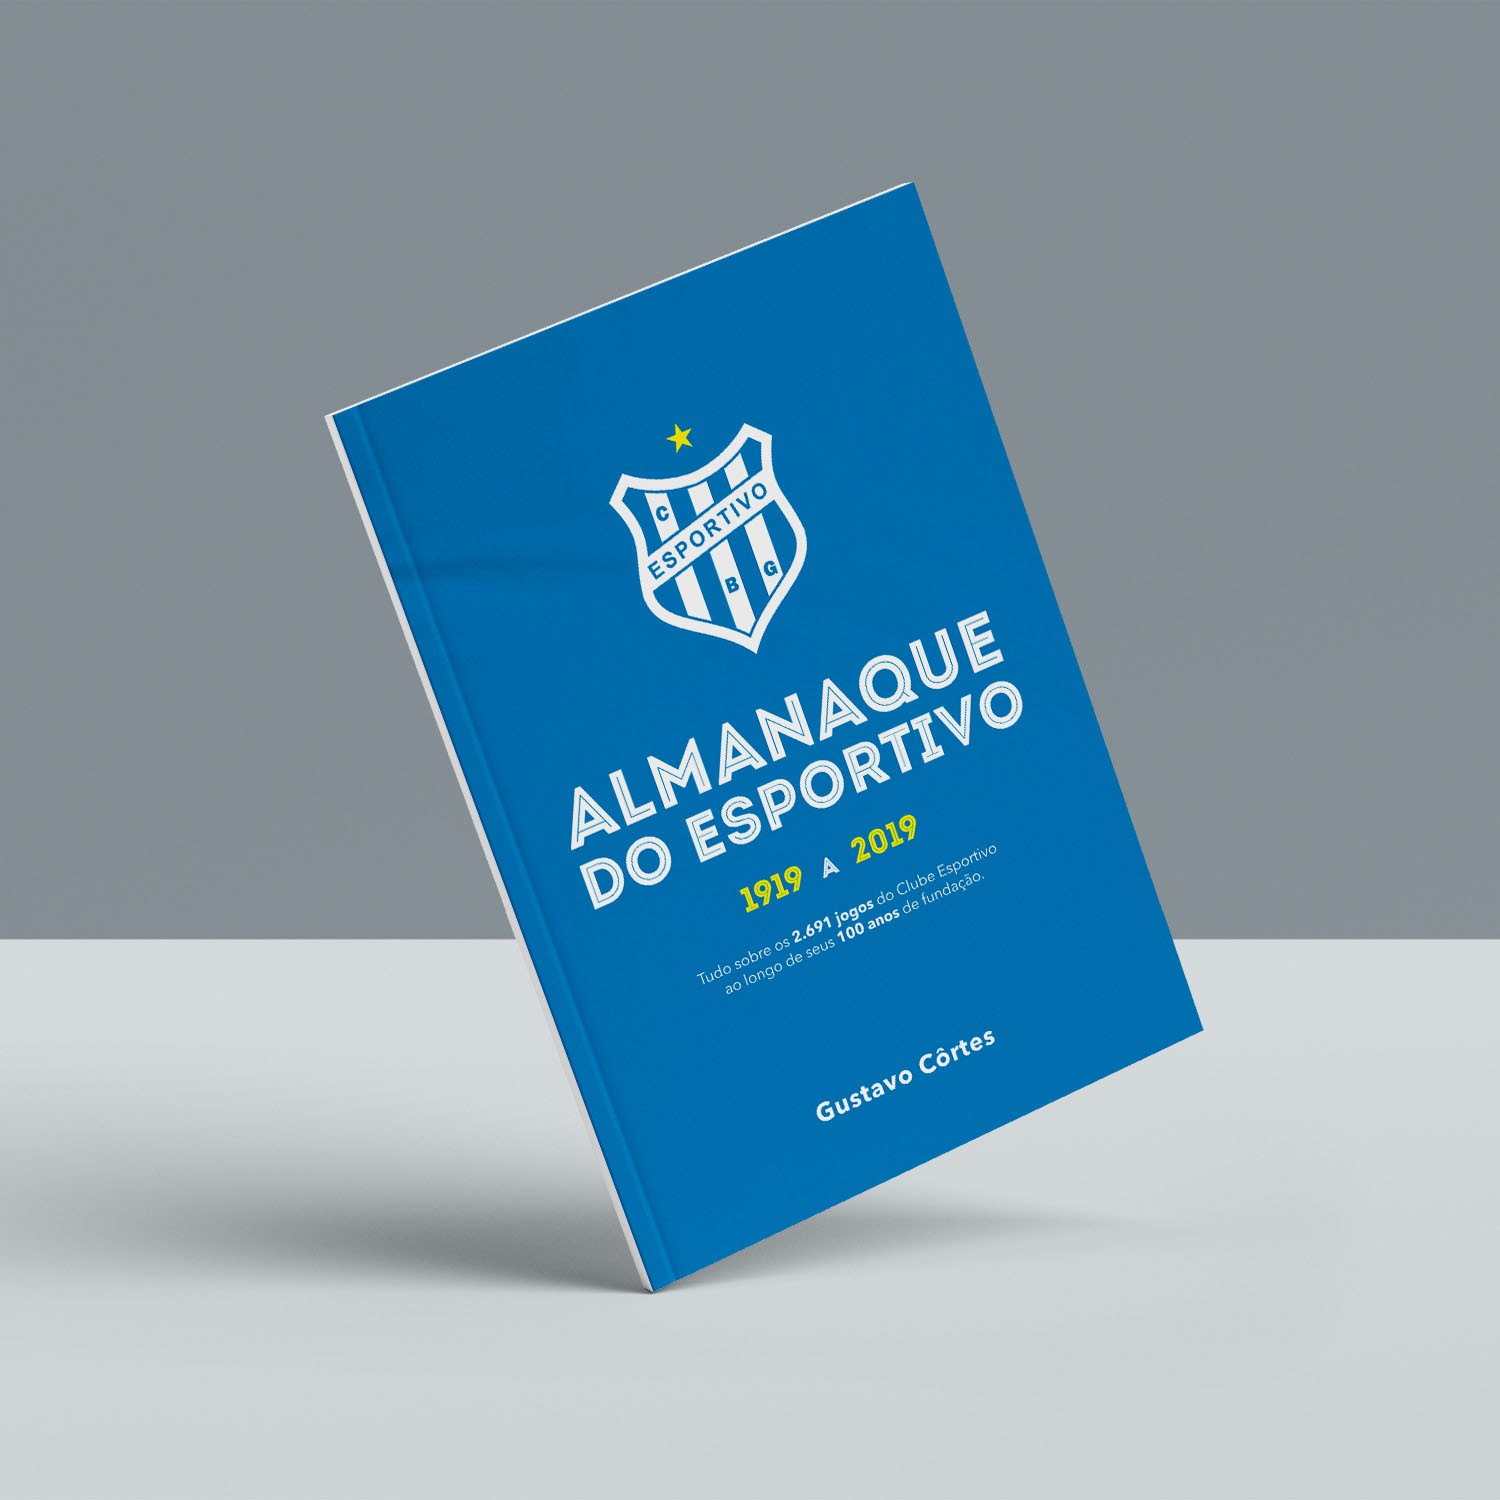 ALMANAQUE DO ESPORTIVO